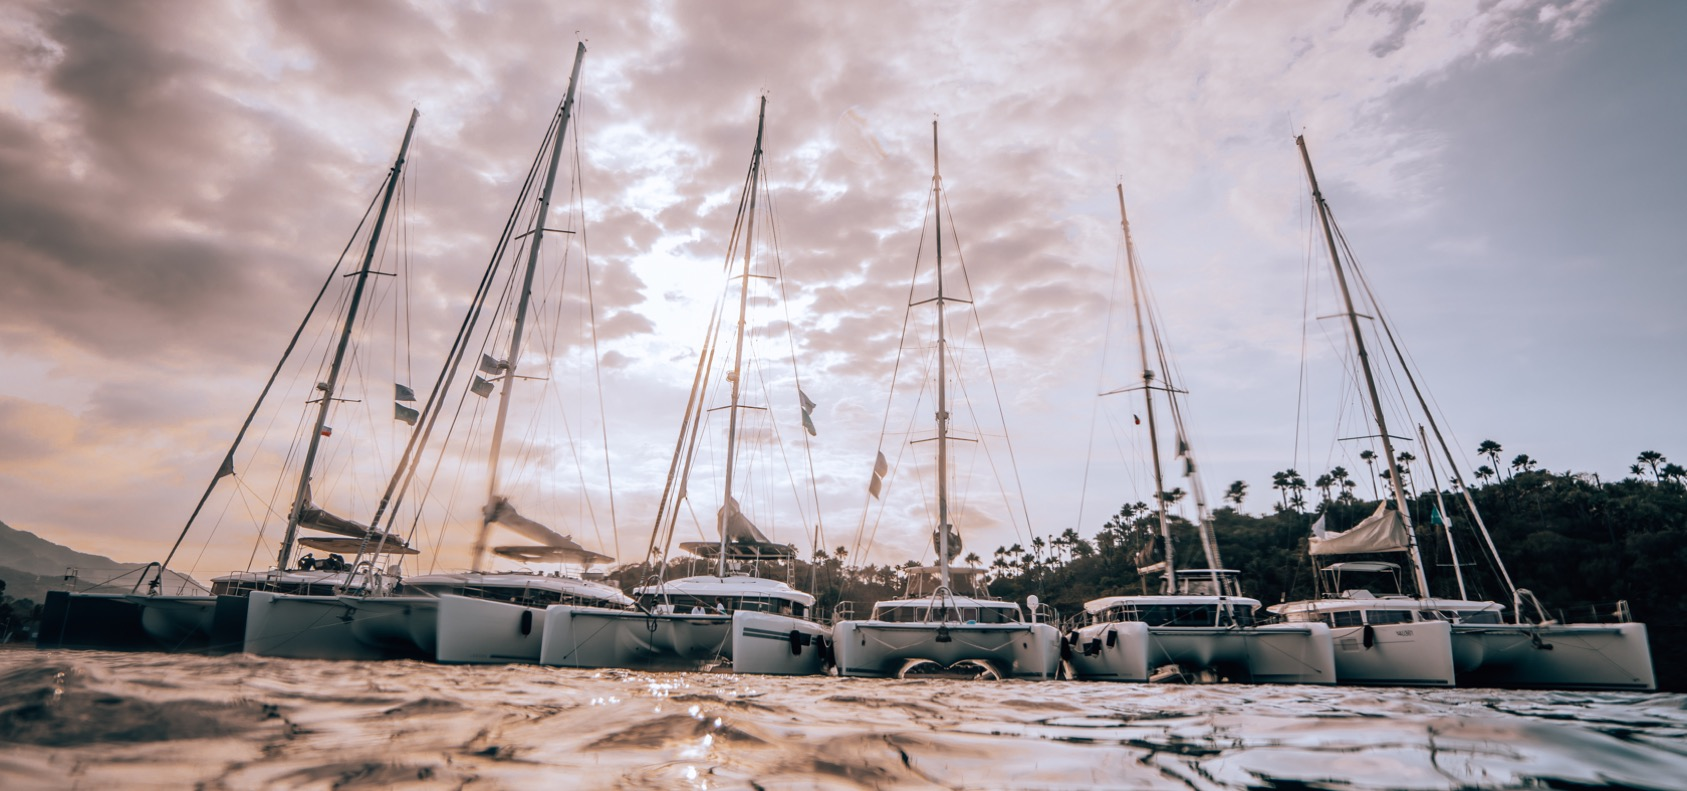 All About Hulls: The Captain's Guide to Boat Hull Types and